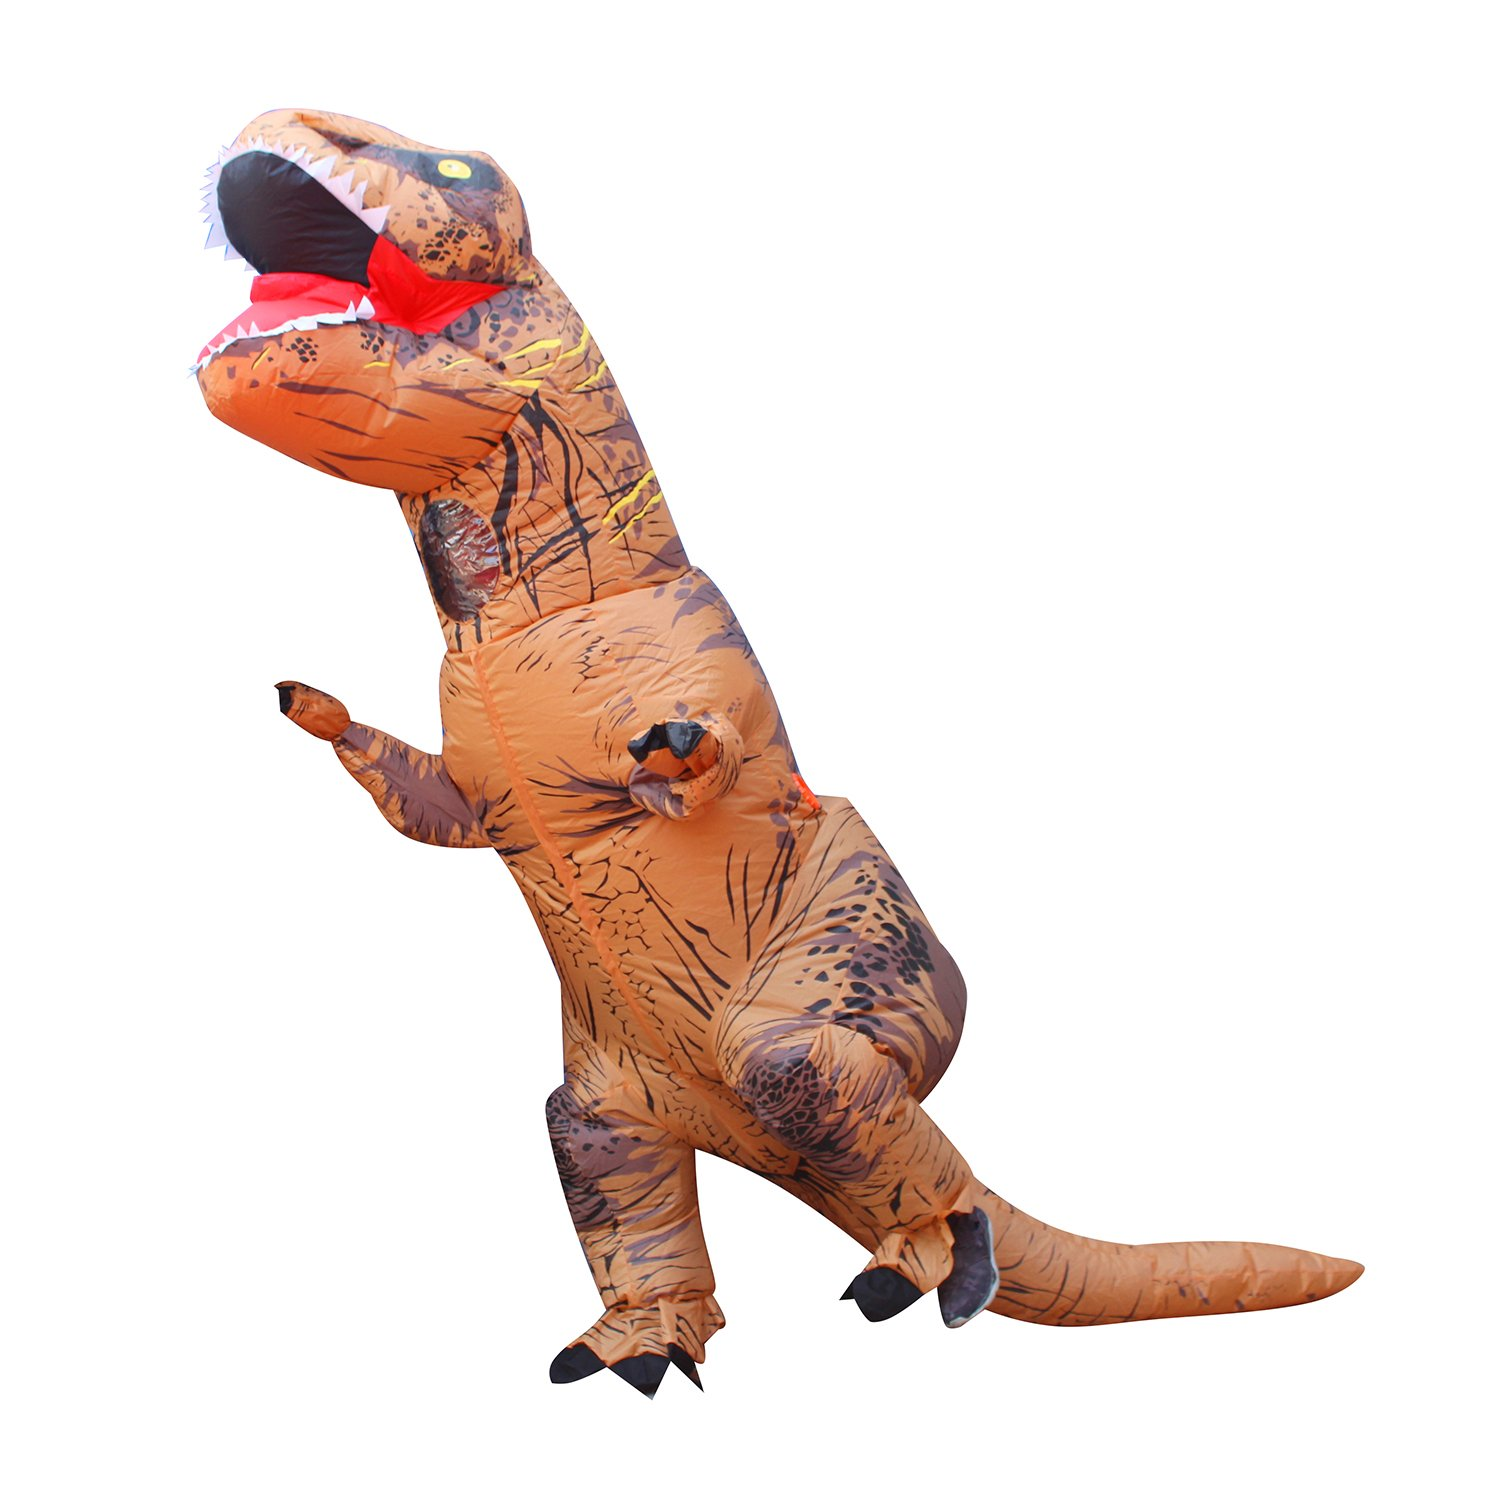 BESTPARTY Halloween Adult Inflatable T-rex Dinosaur Party Costume Funny Fancy Dress Fantastic Suit